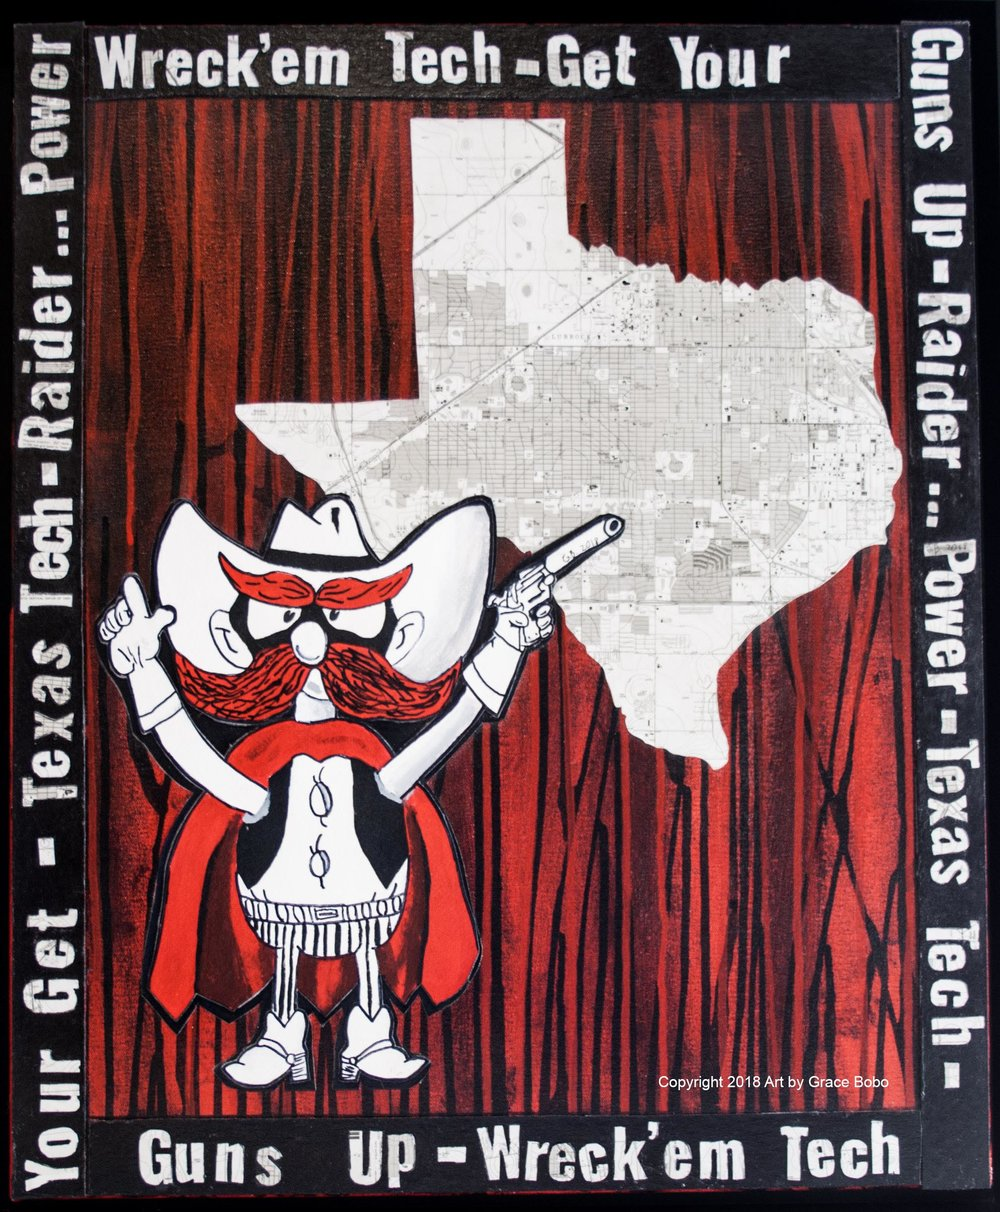 Red Raider | Acrylic, Ink and Collage on Canvas | 20x24